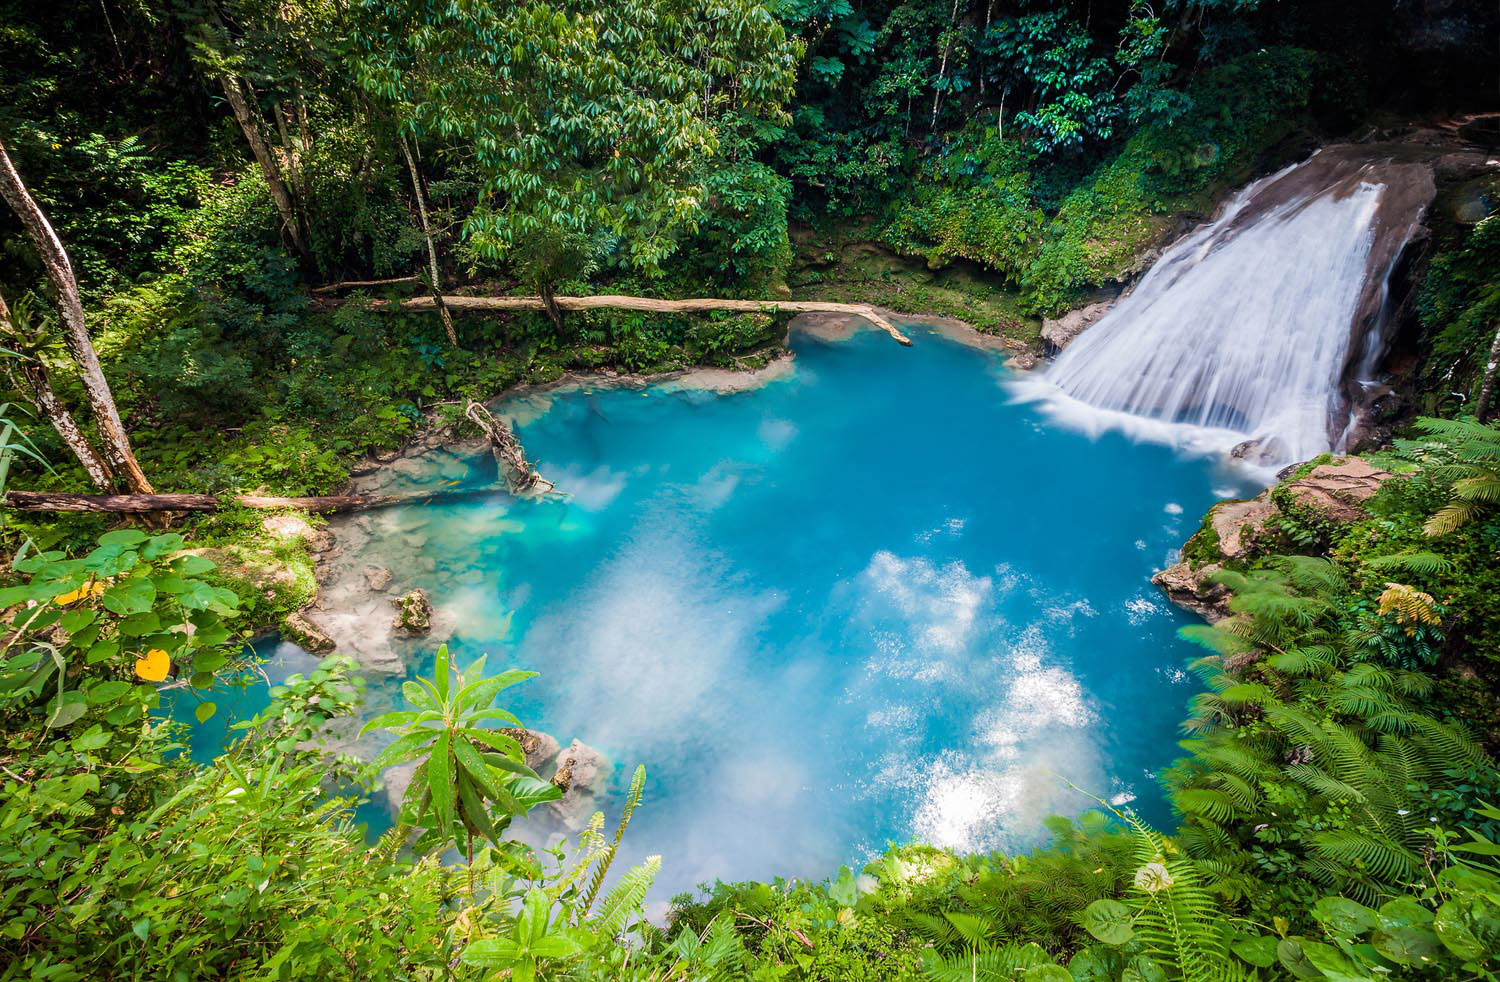 The oasis of Secret Falls above Jamaica's north coast. Photo Spirit/Shutterstock.com